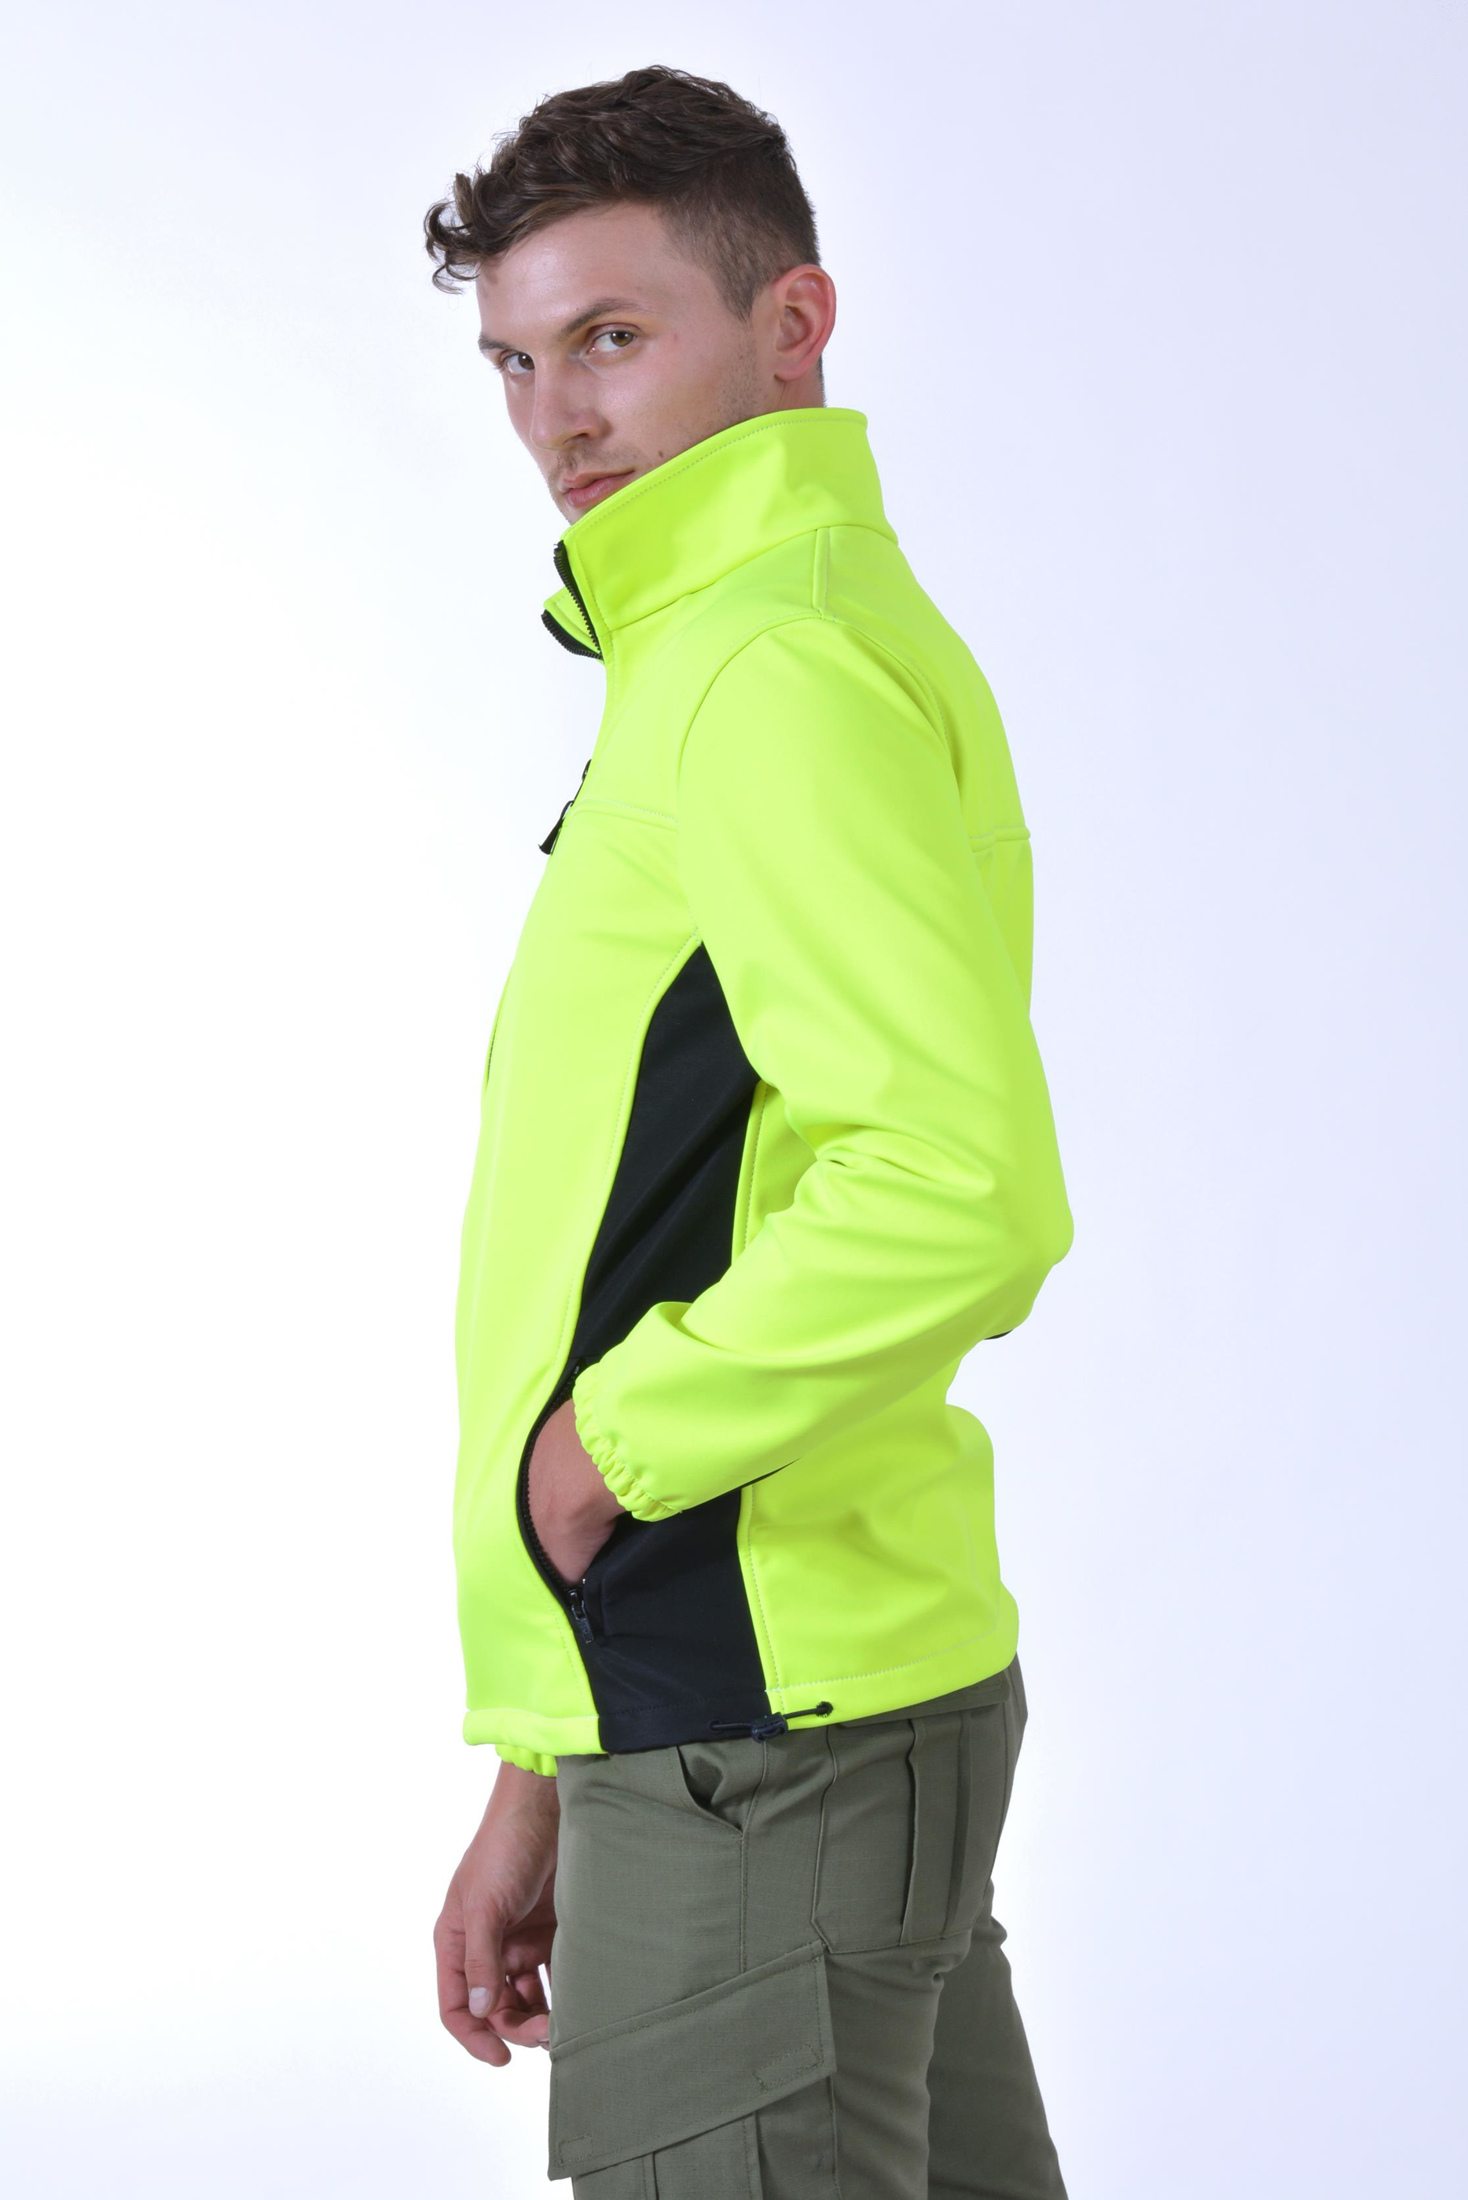 Muška soft shell jakna, vodoodbojna, vjetronepropusna, men's soft shell jacket, water repellent, windproof, high vision